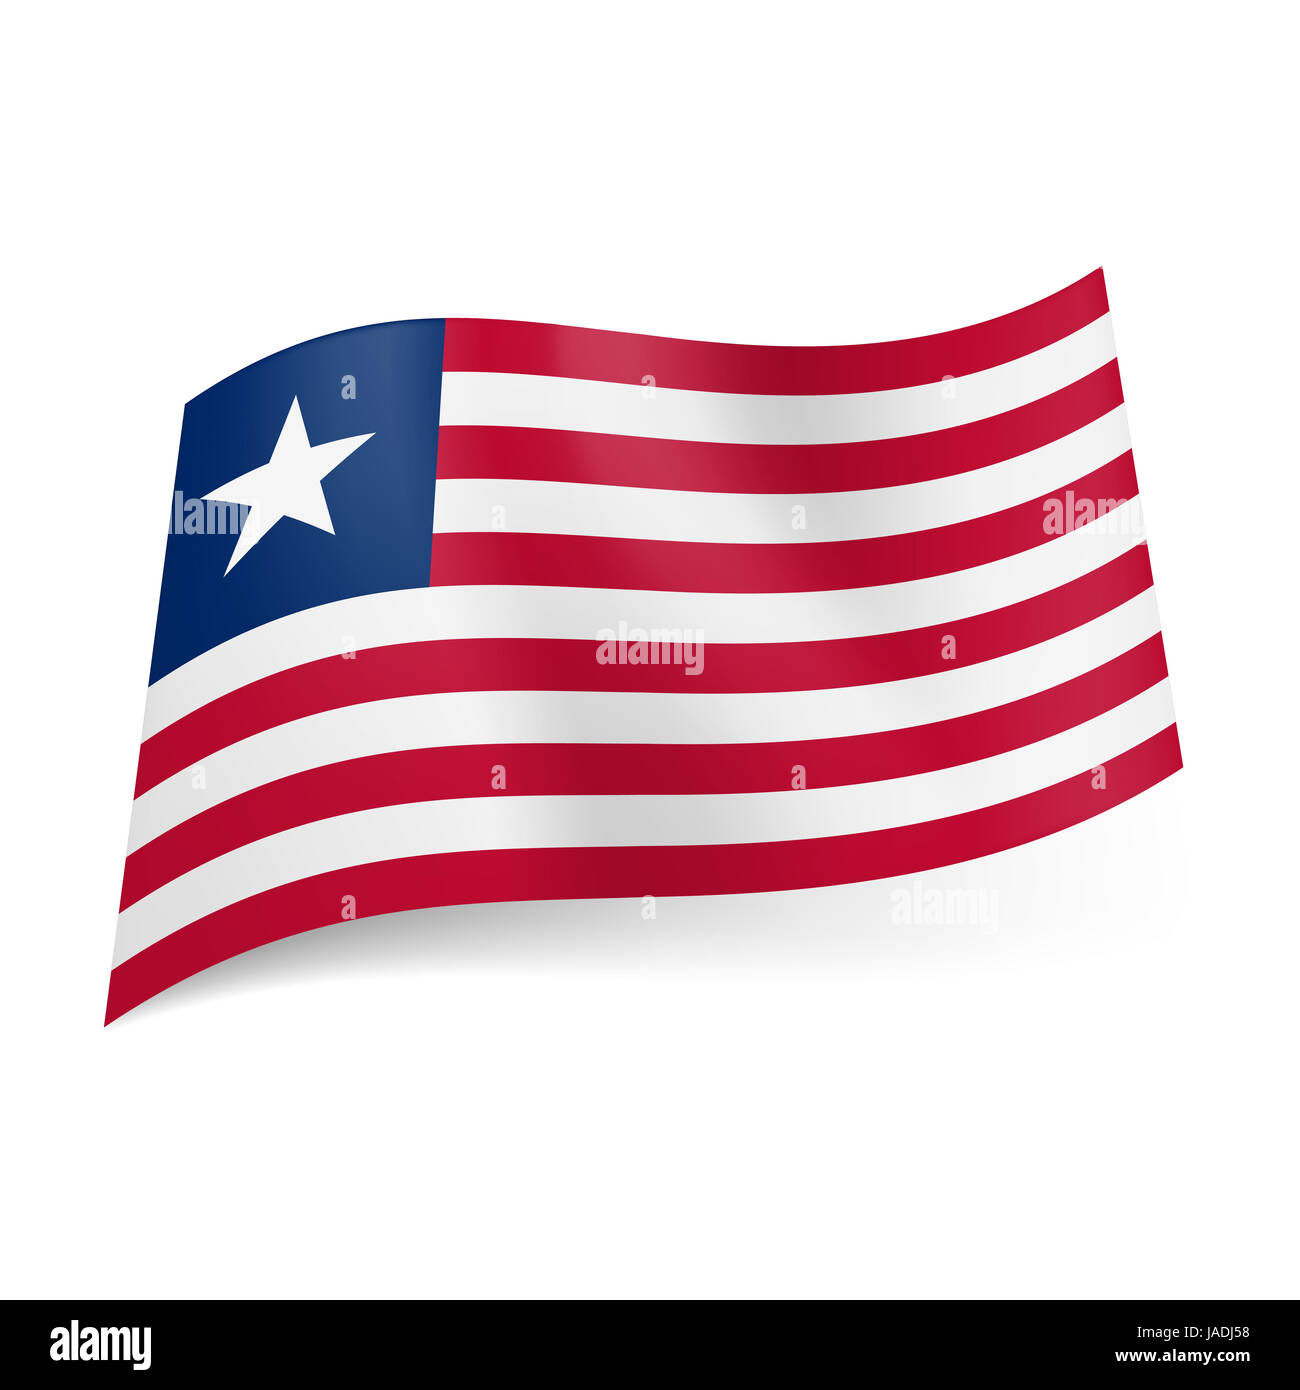 National flag of Liberia: red and white horizontal stripes ...